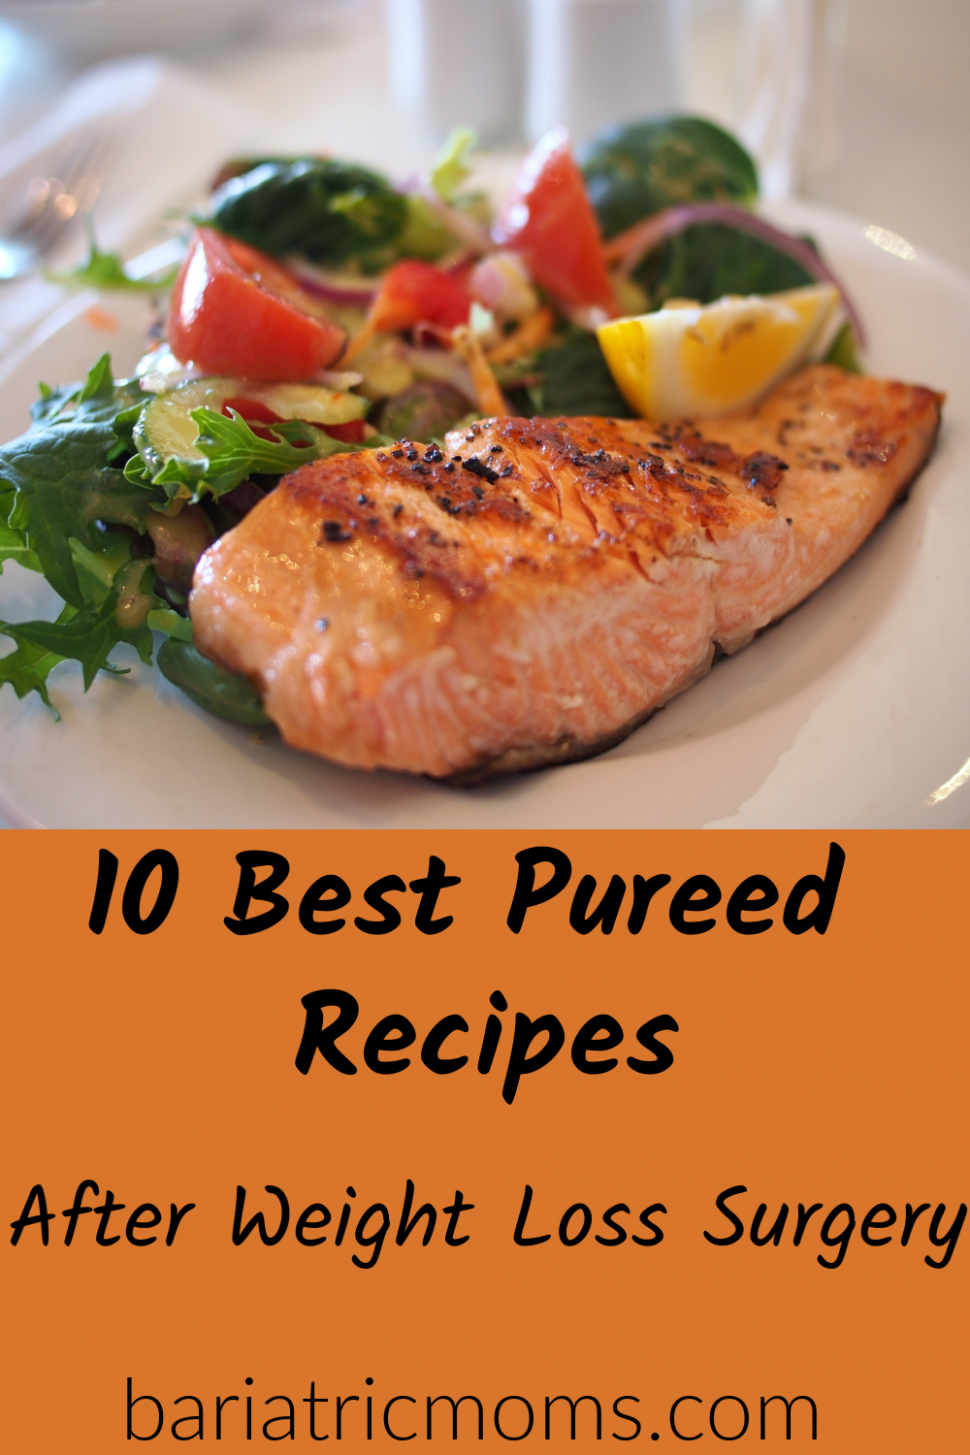 The 8 Best Pureed/Soft Food recipes After Bariatric Surgery - - Recipes For Weight Loss Surgery